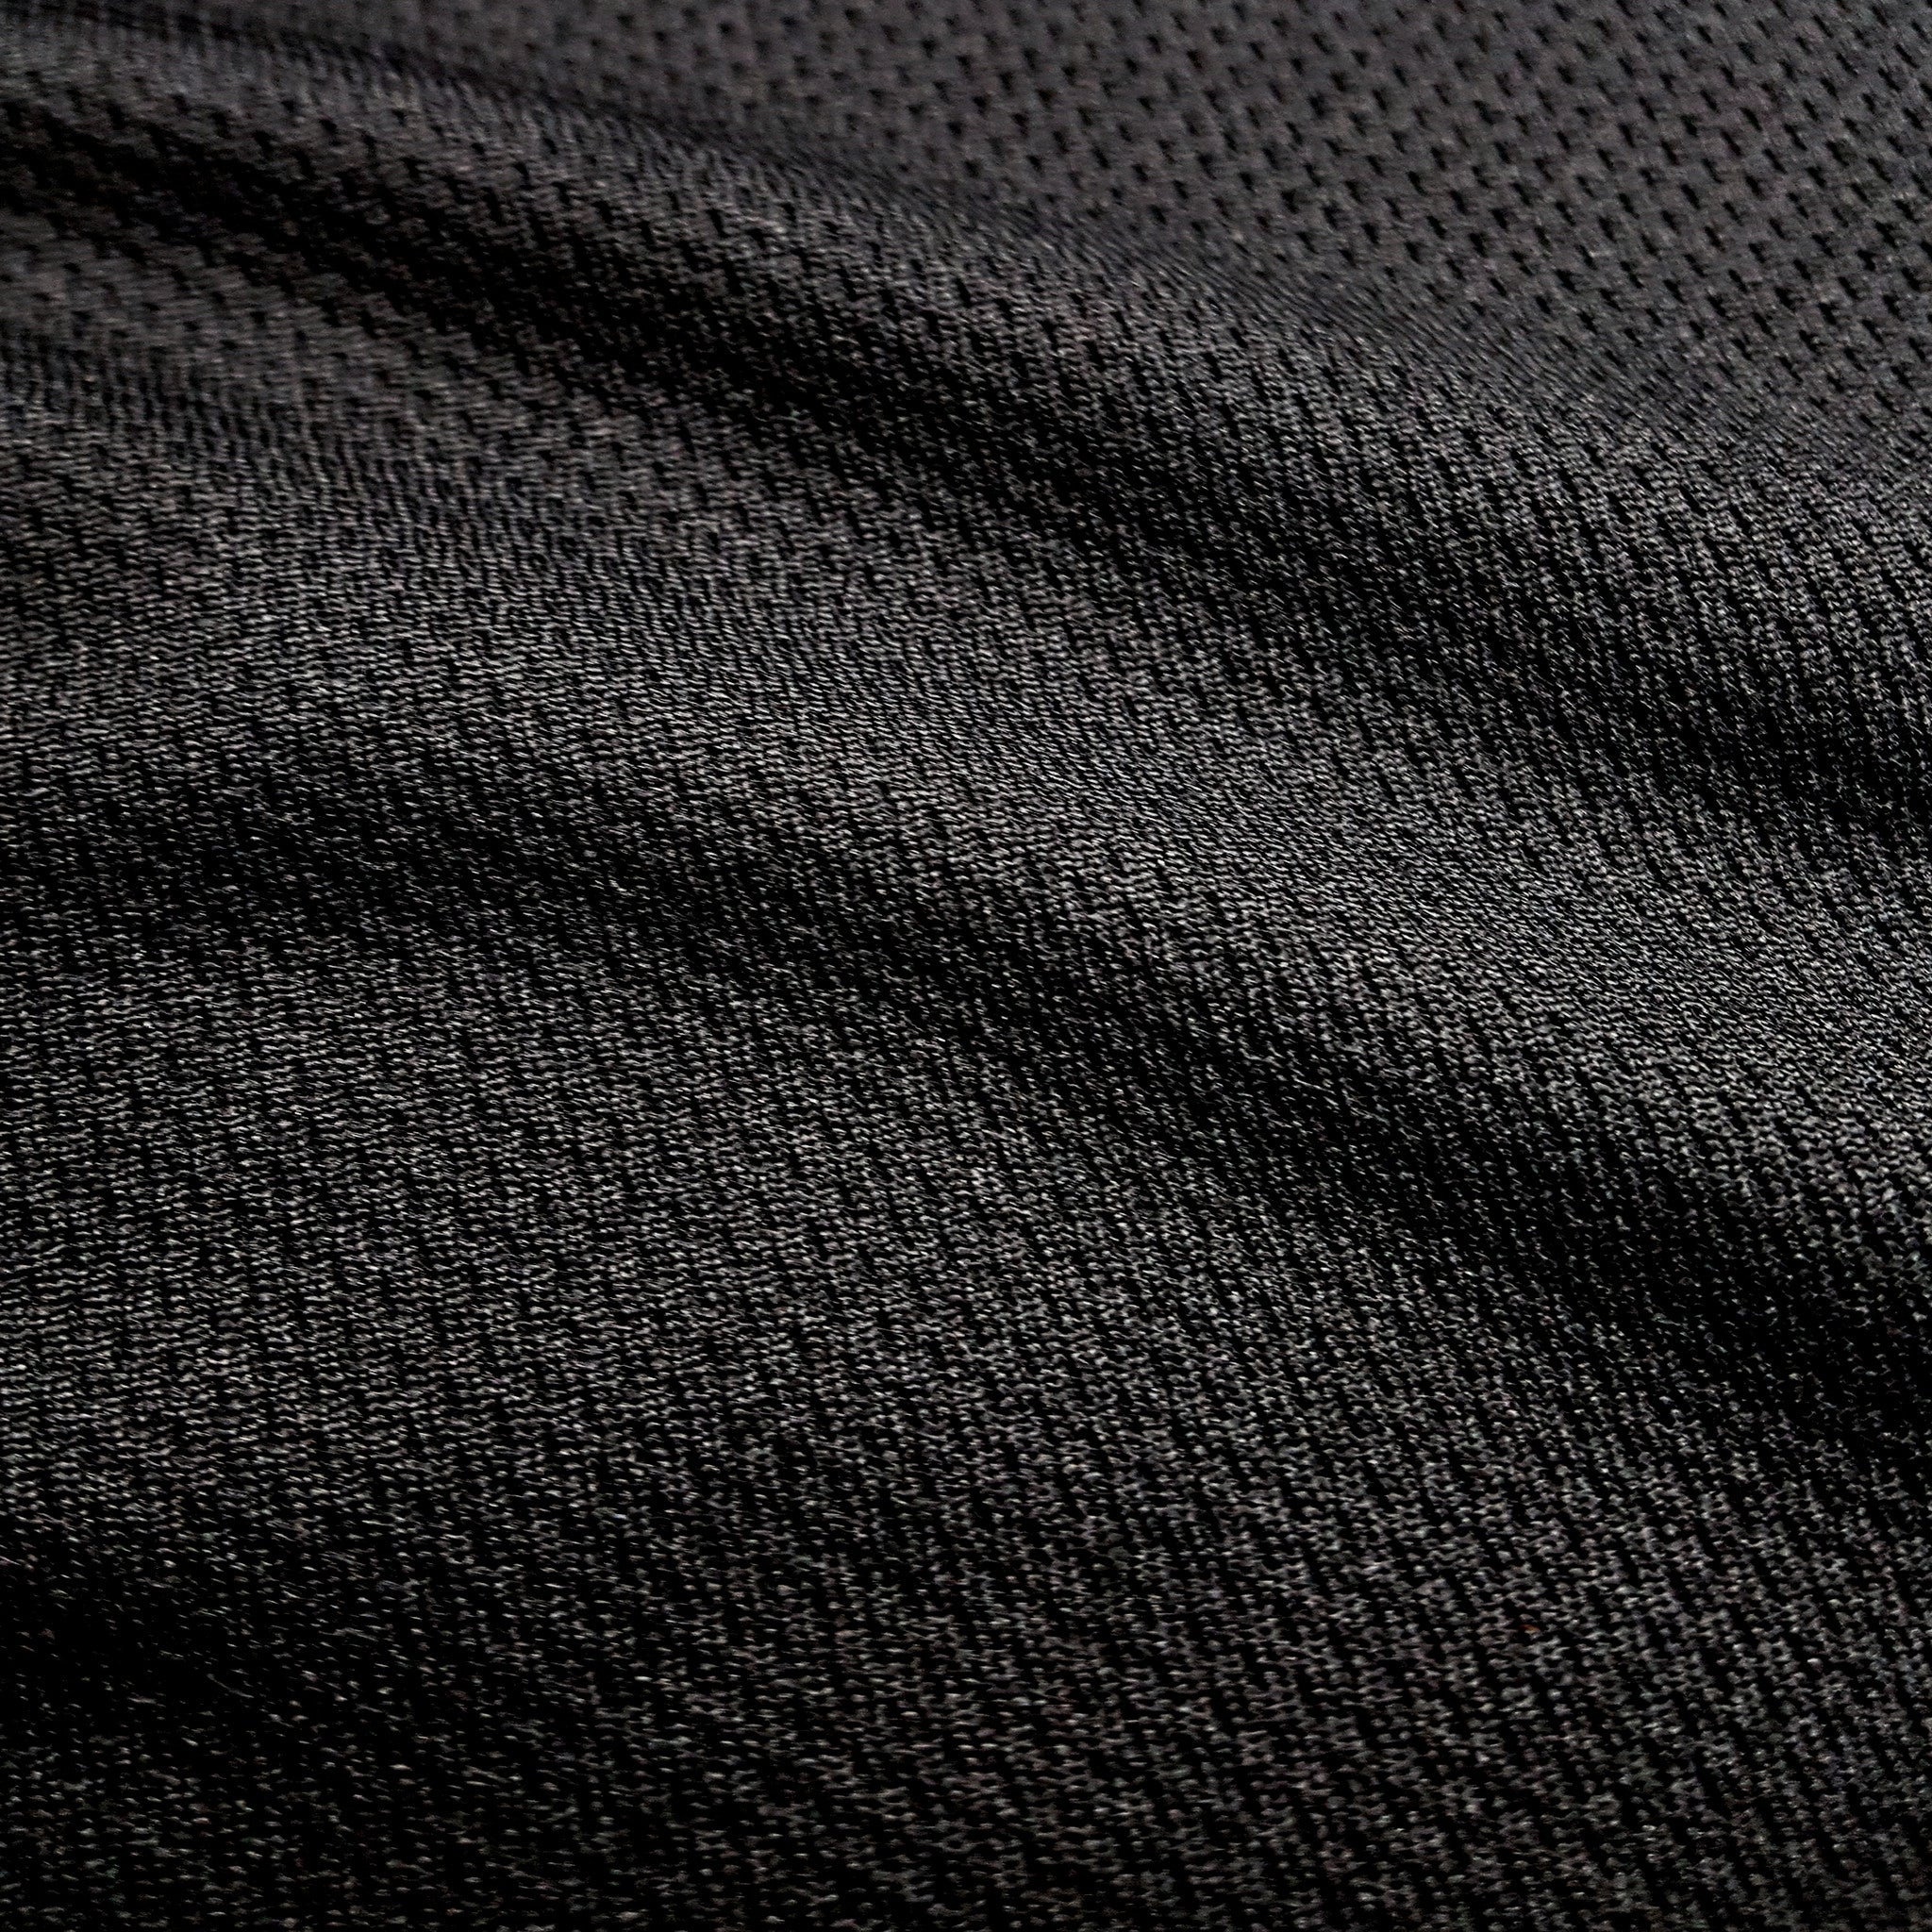 SportyFish Black Series black Long-sleeves t-shirt: Black Marlin close-up view 4